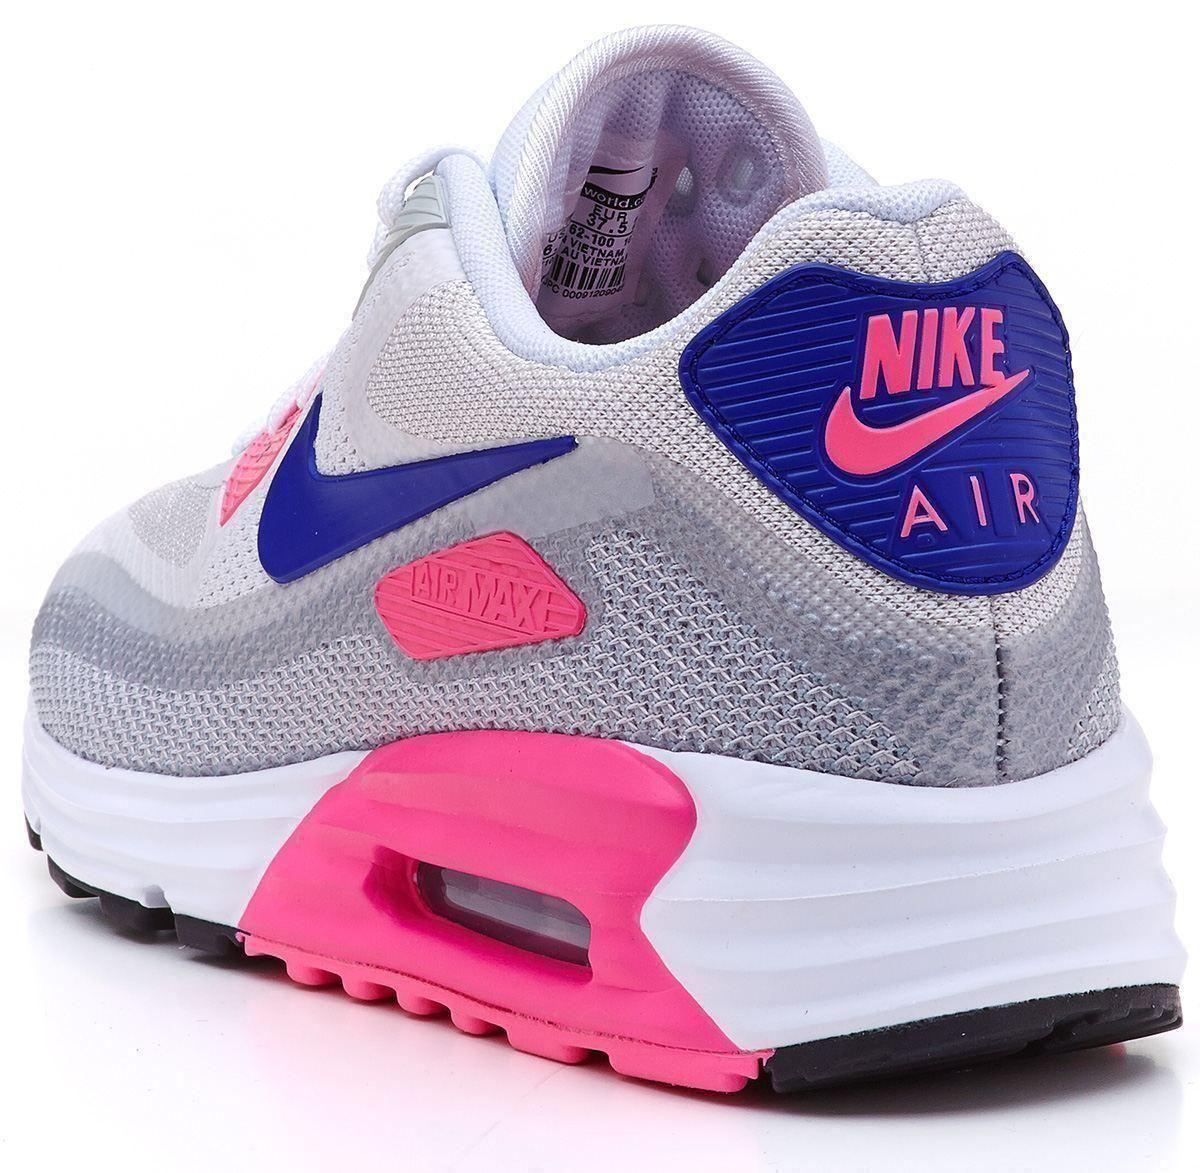 nike air max womens size 8